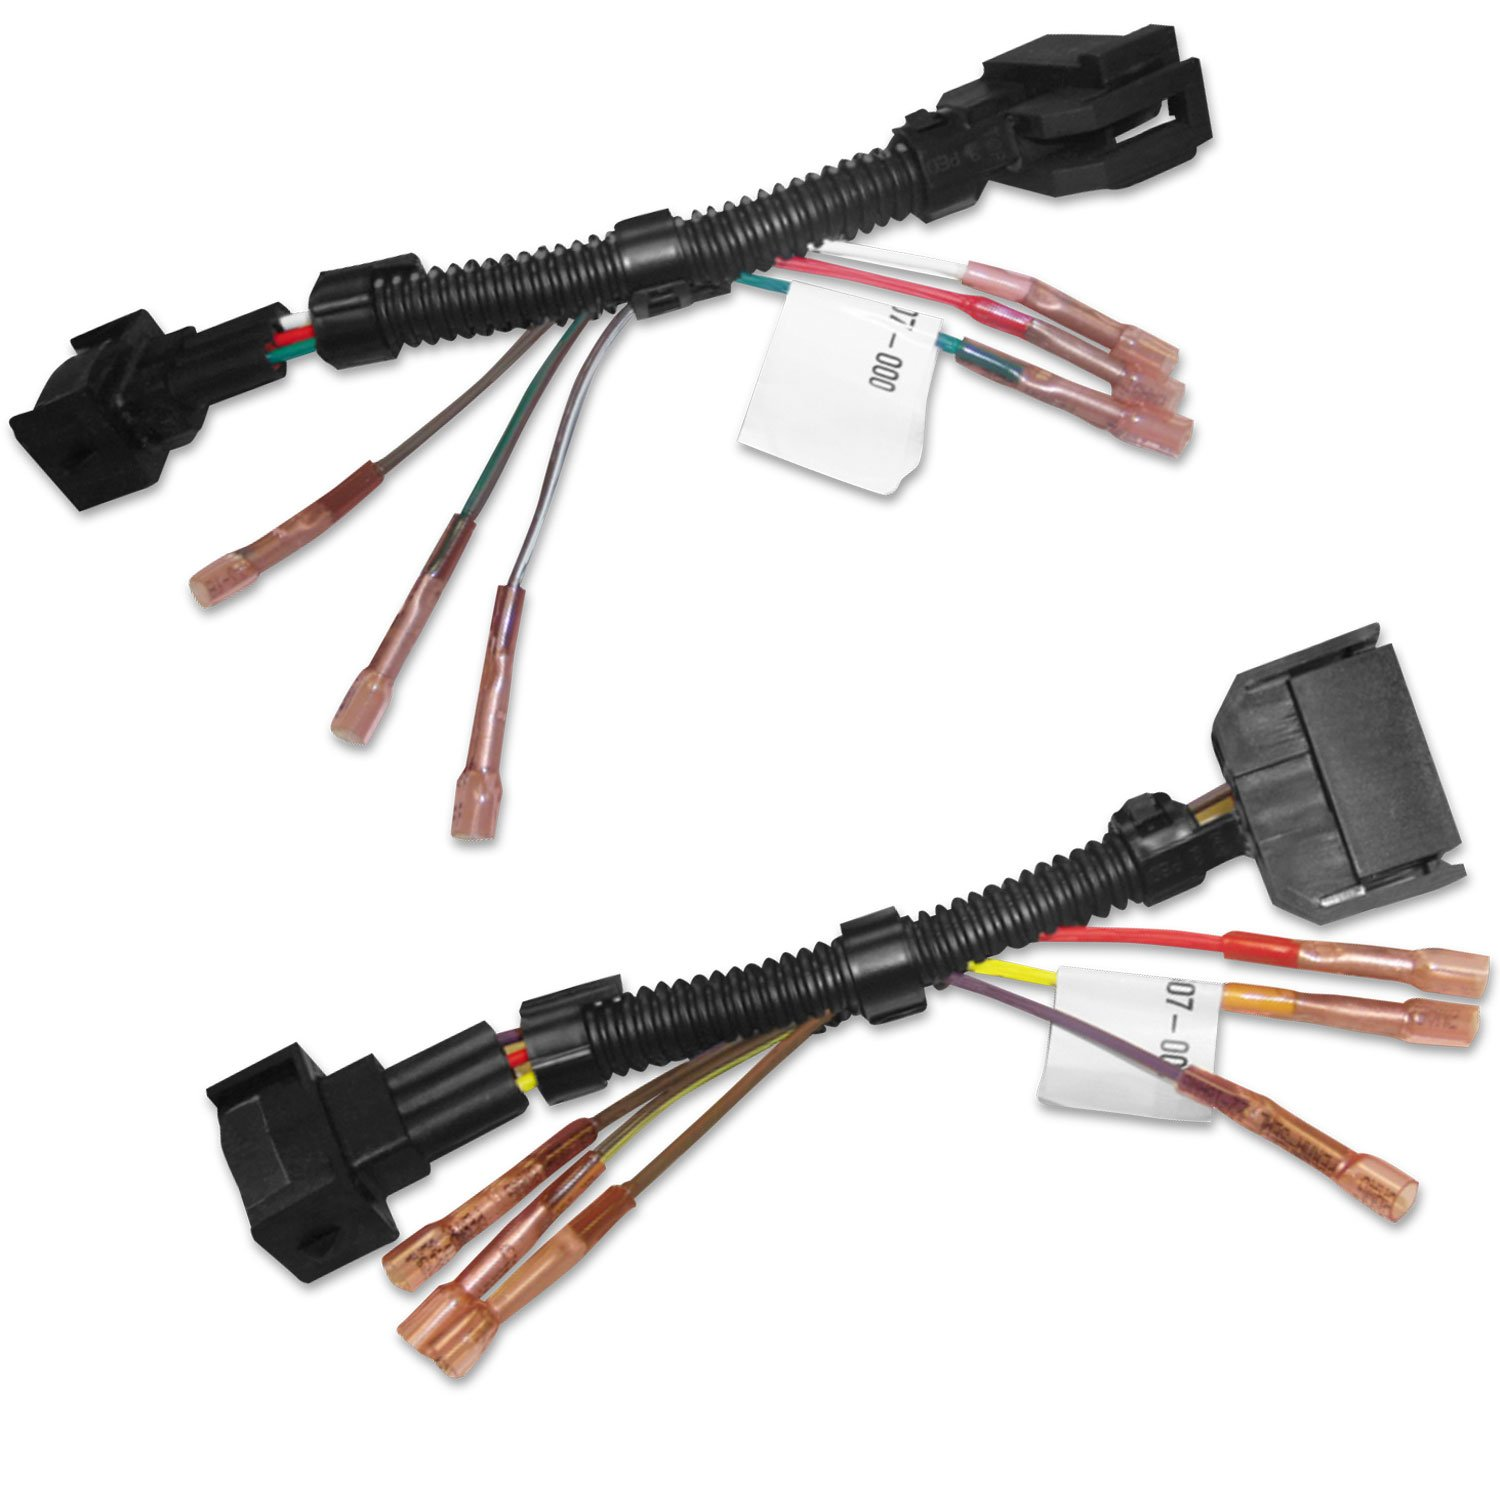 Msd Coil Wire Harness Wiring Diagram Sample Gm Ballast Resistor 88812 Dis 4 To Ford Dual Pack